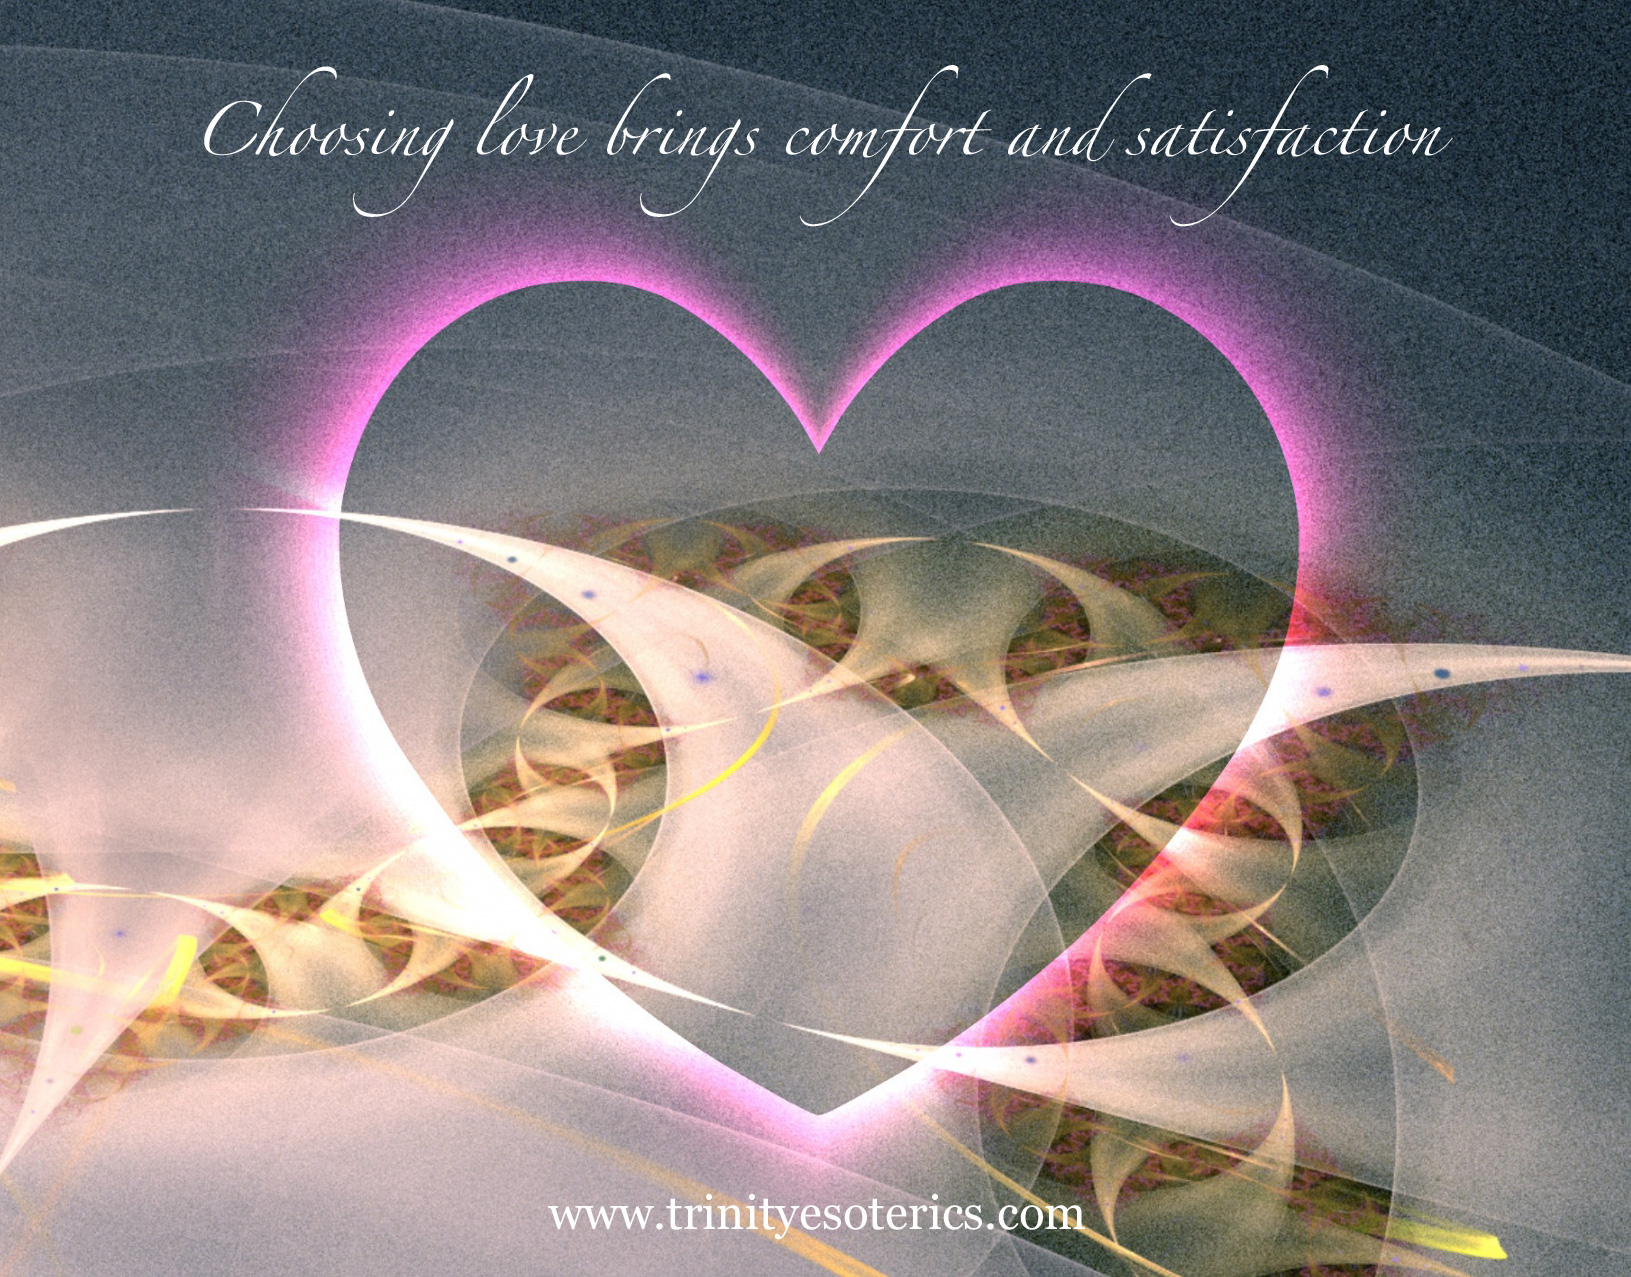 choose love heart light shine trinity esoterics